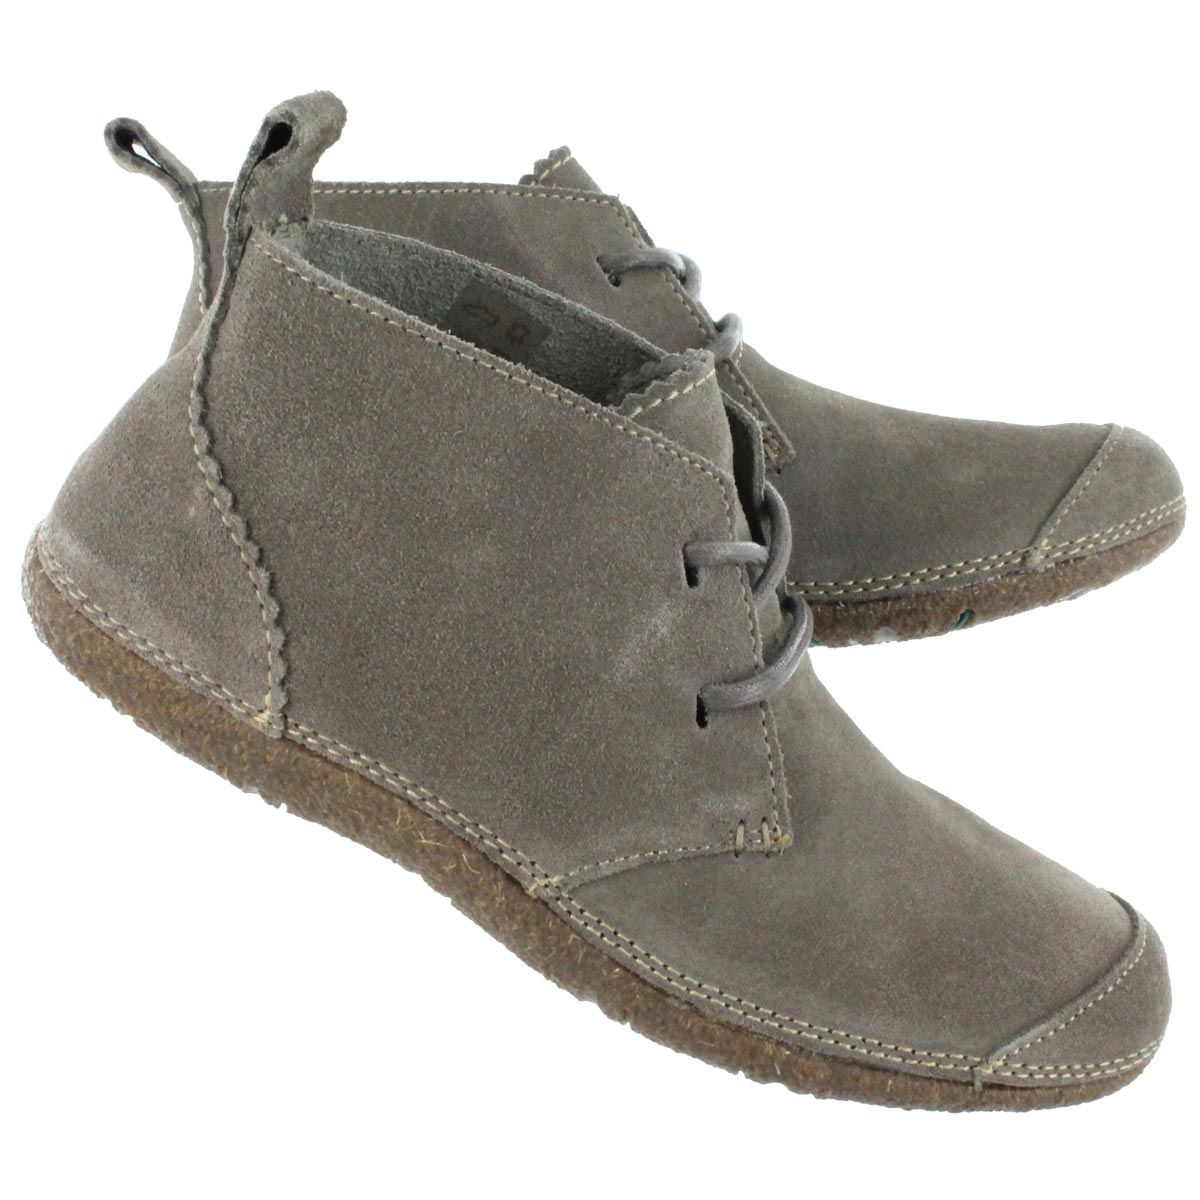 Hush Puppies Women's MINDSET taupe suede chukka boots